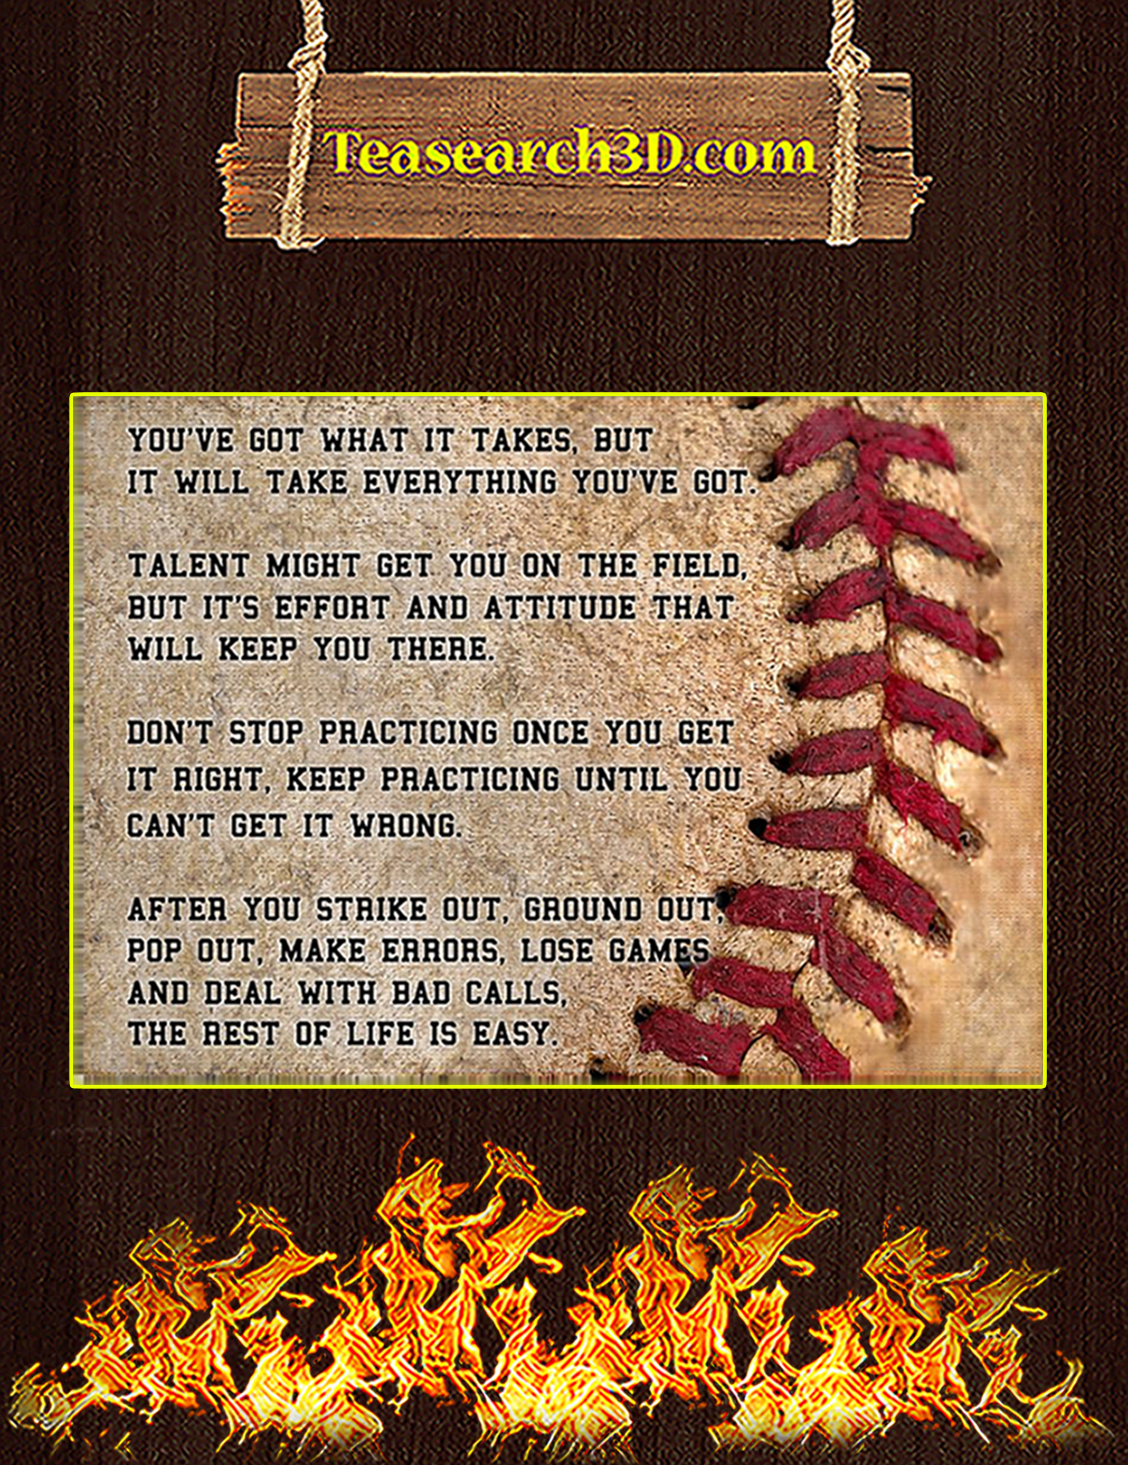 Baseball motivation you got what it takes poster A3